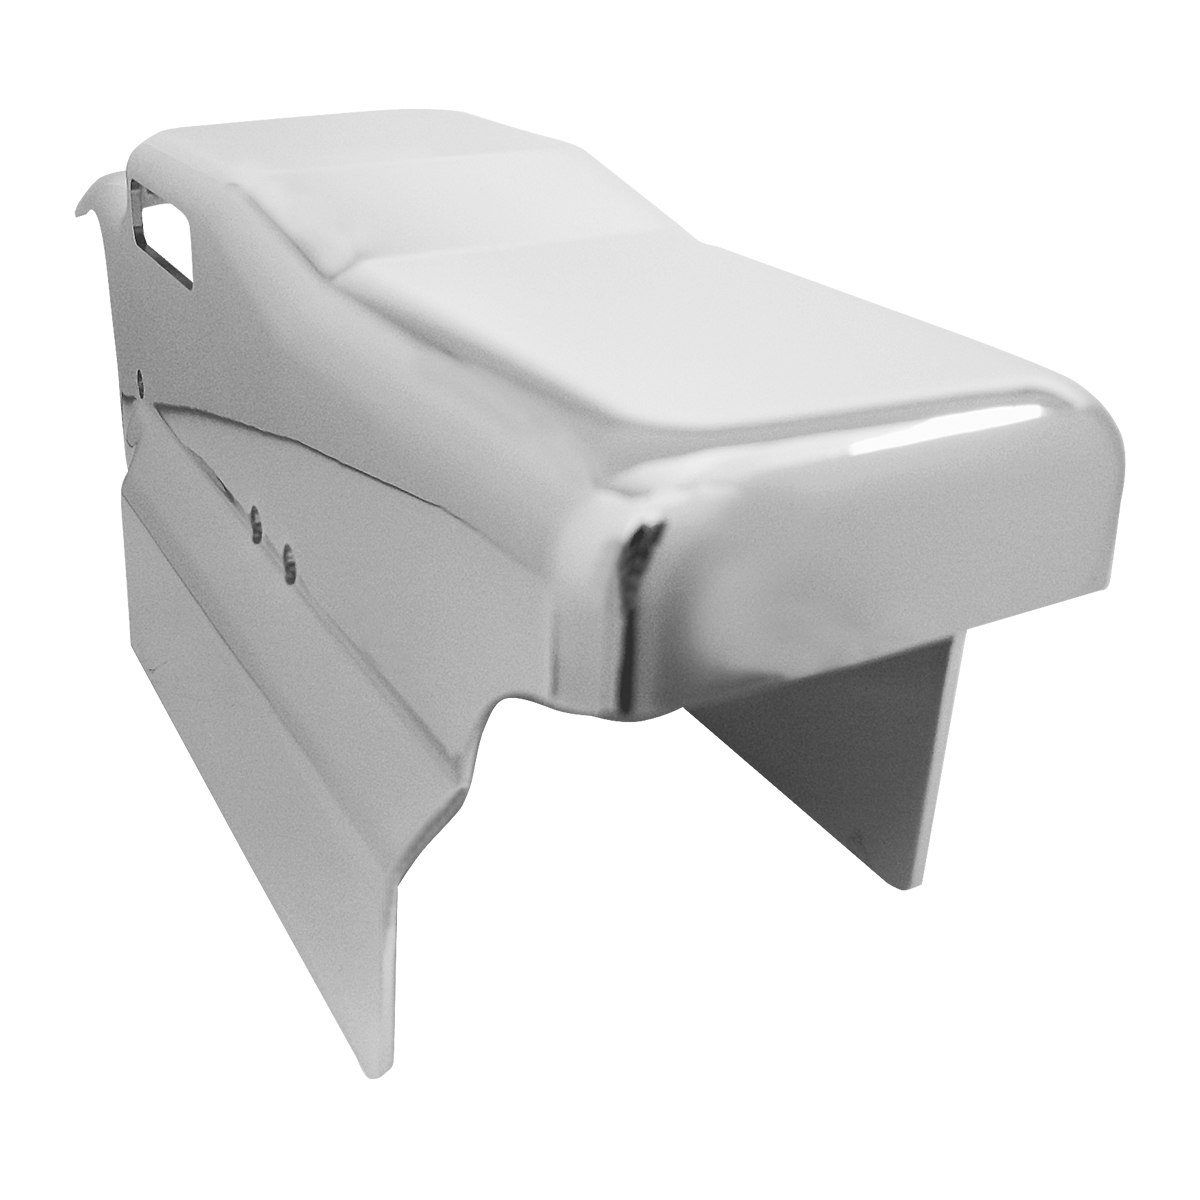 53997 Steering Column Cover for Peterbilt 1998 to 2003